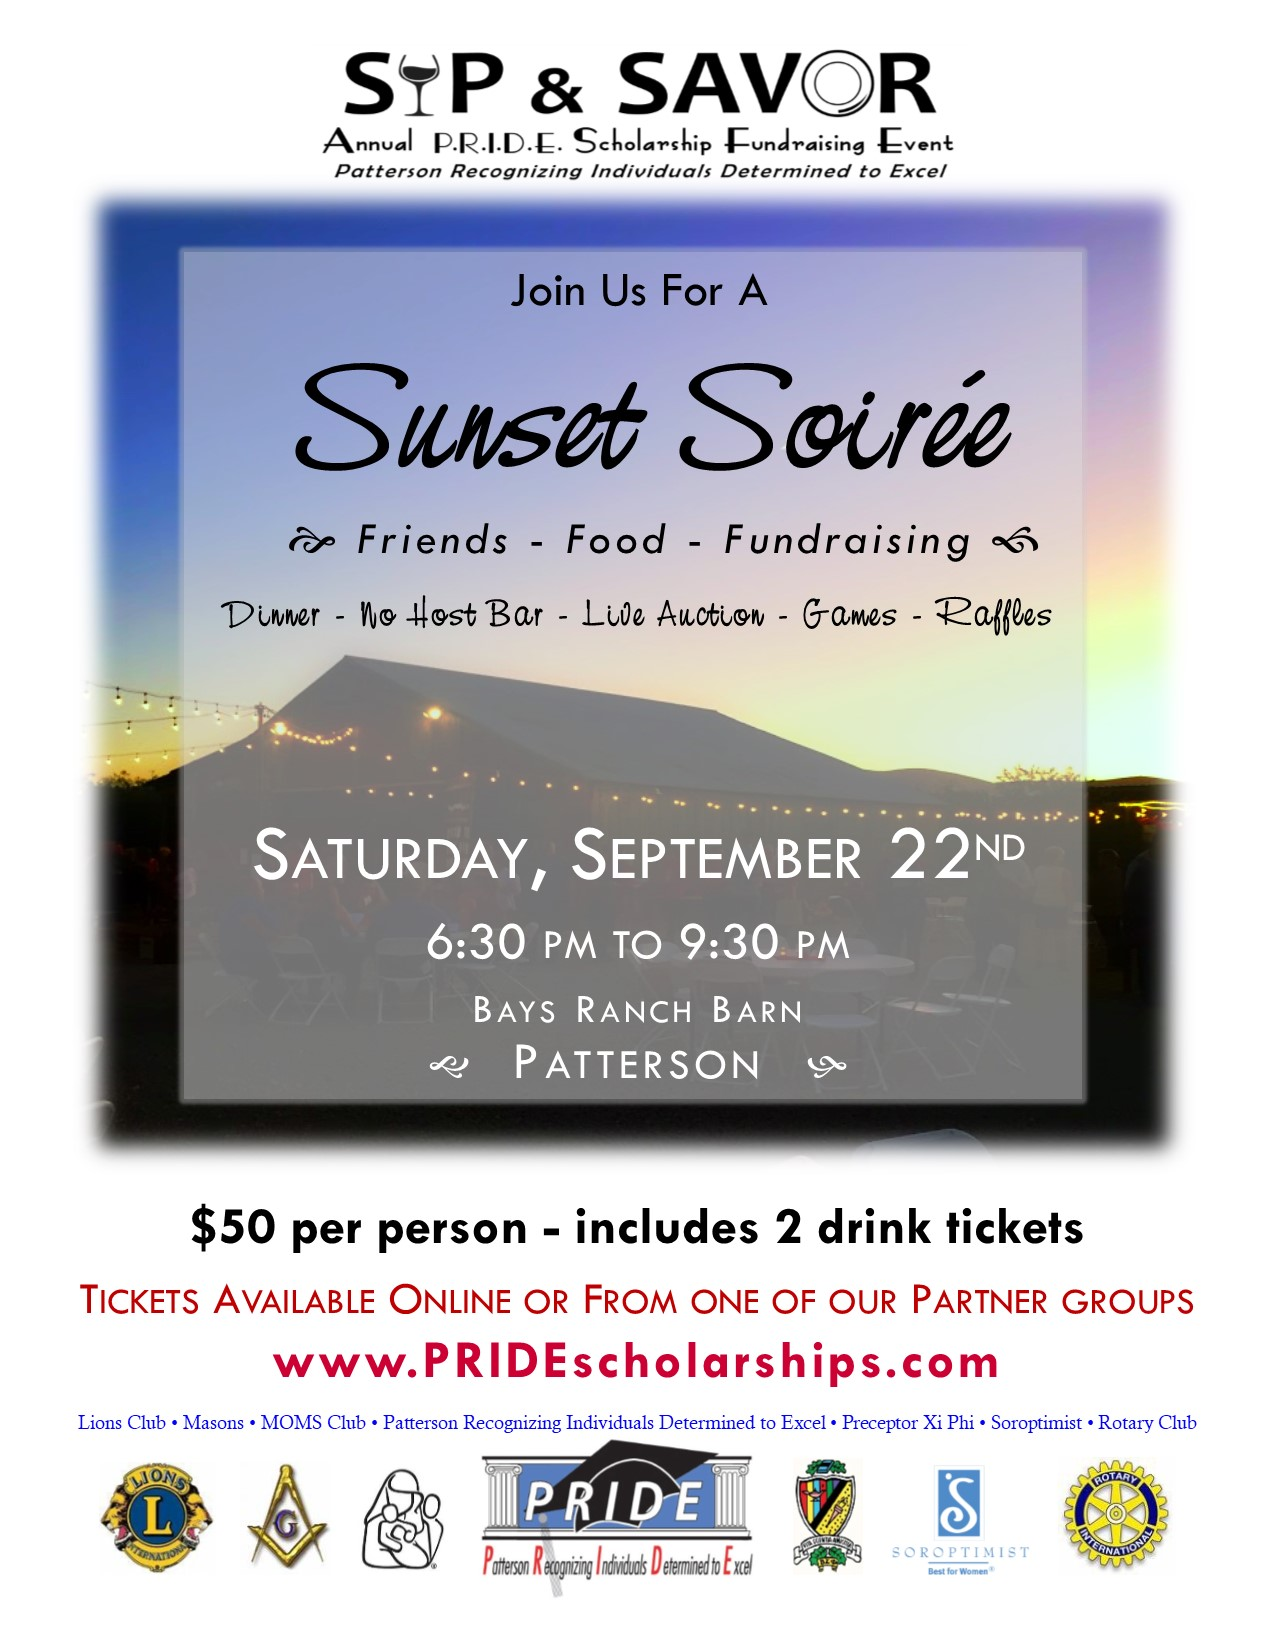 Sip and Savor PRIDE Scholarship Event